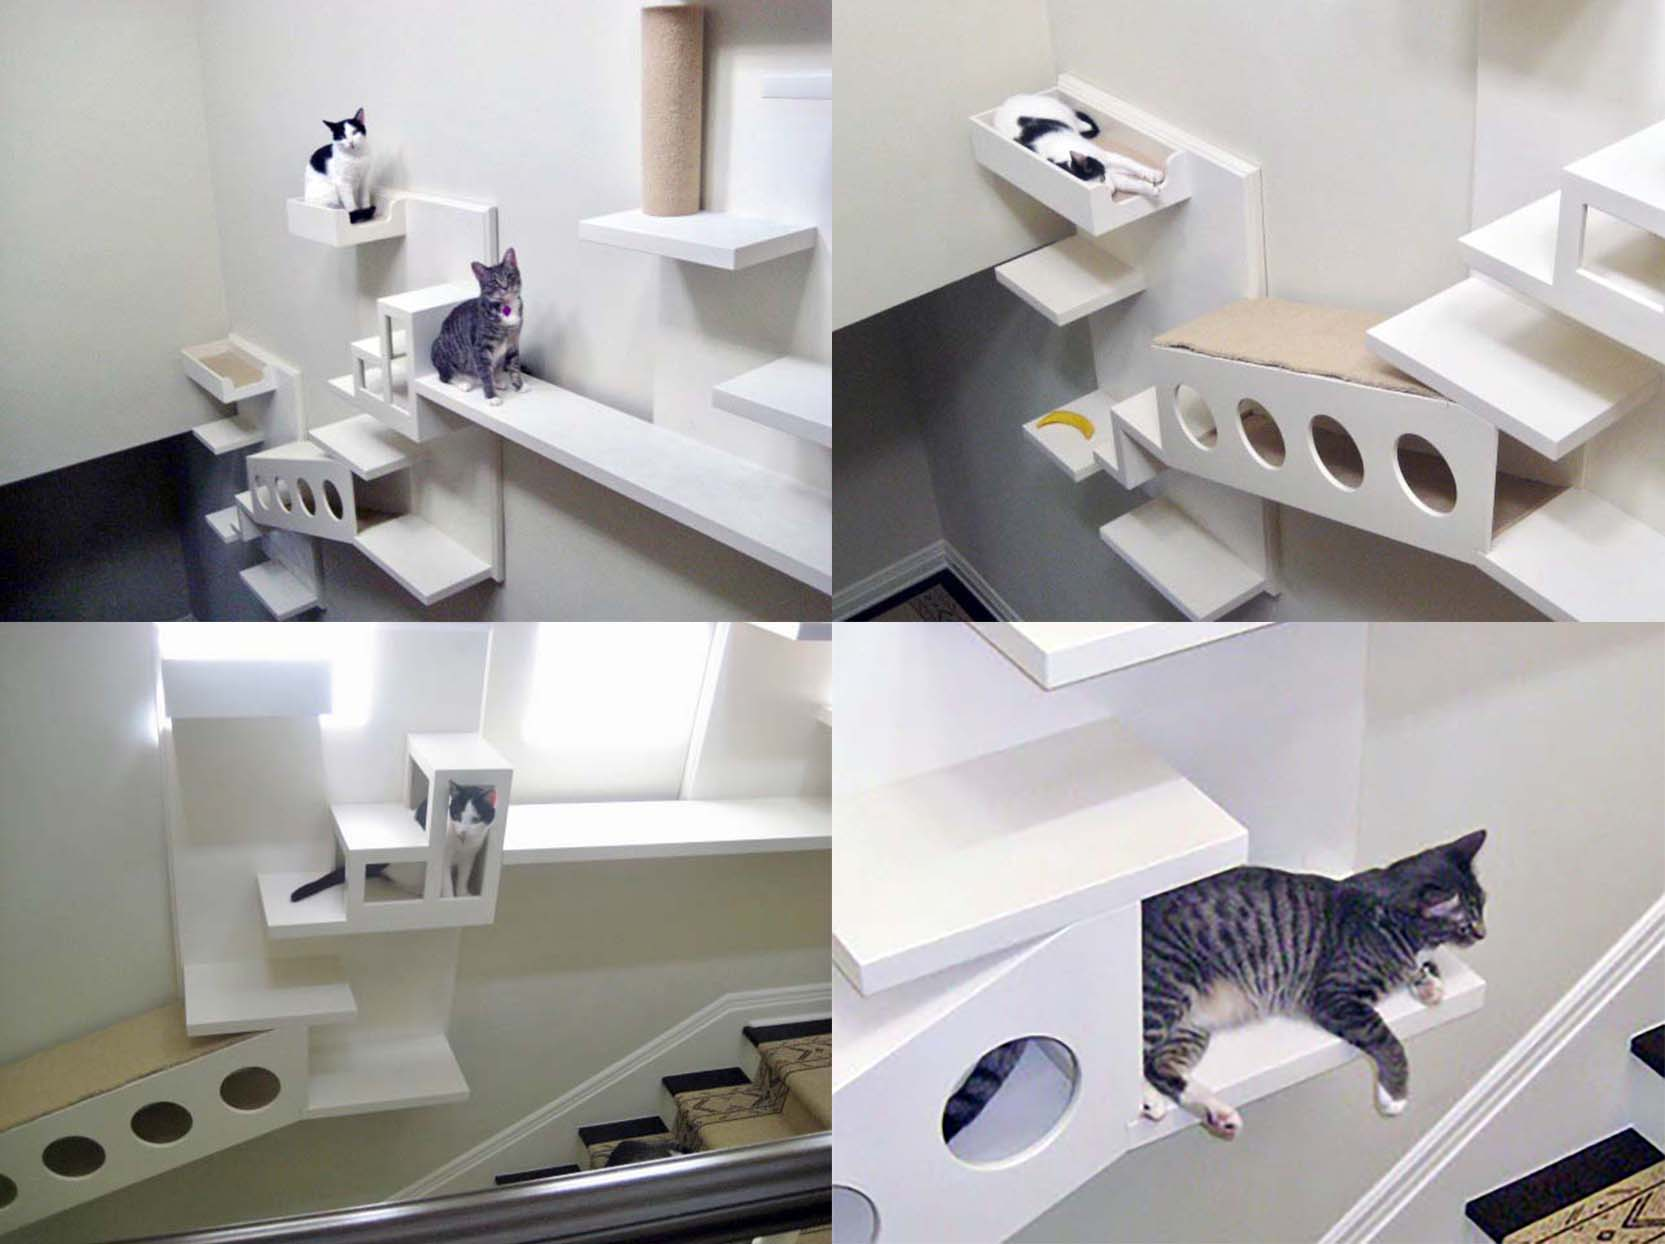 Composite of Yeardley Smith's cat stairs